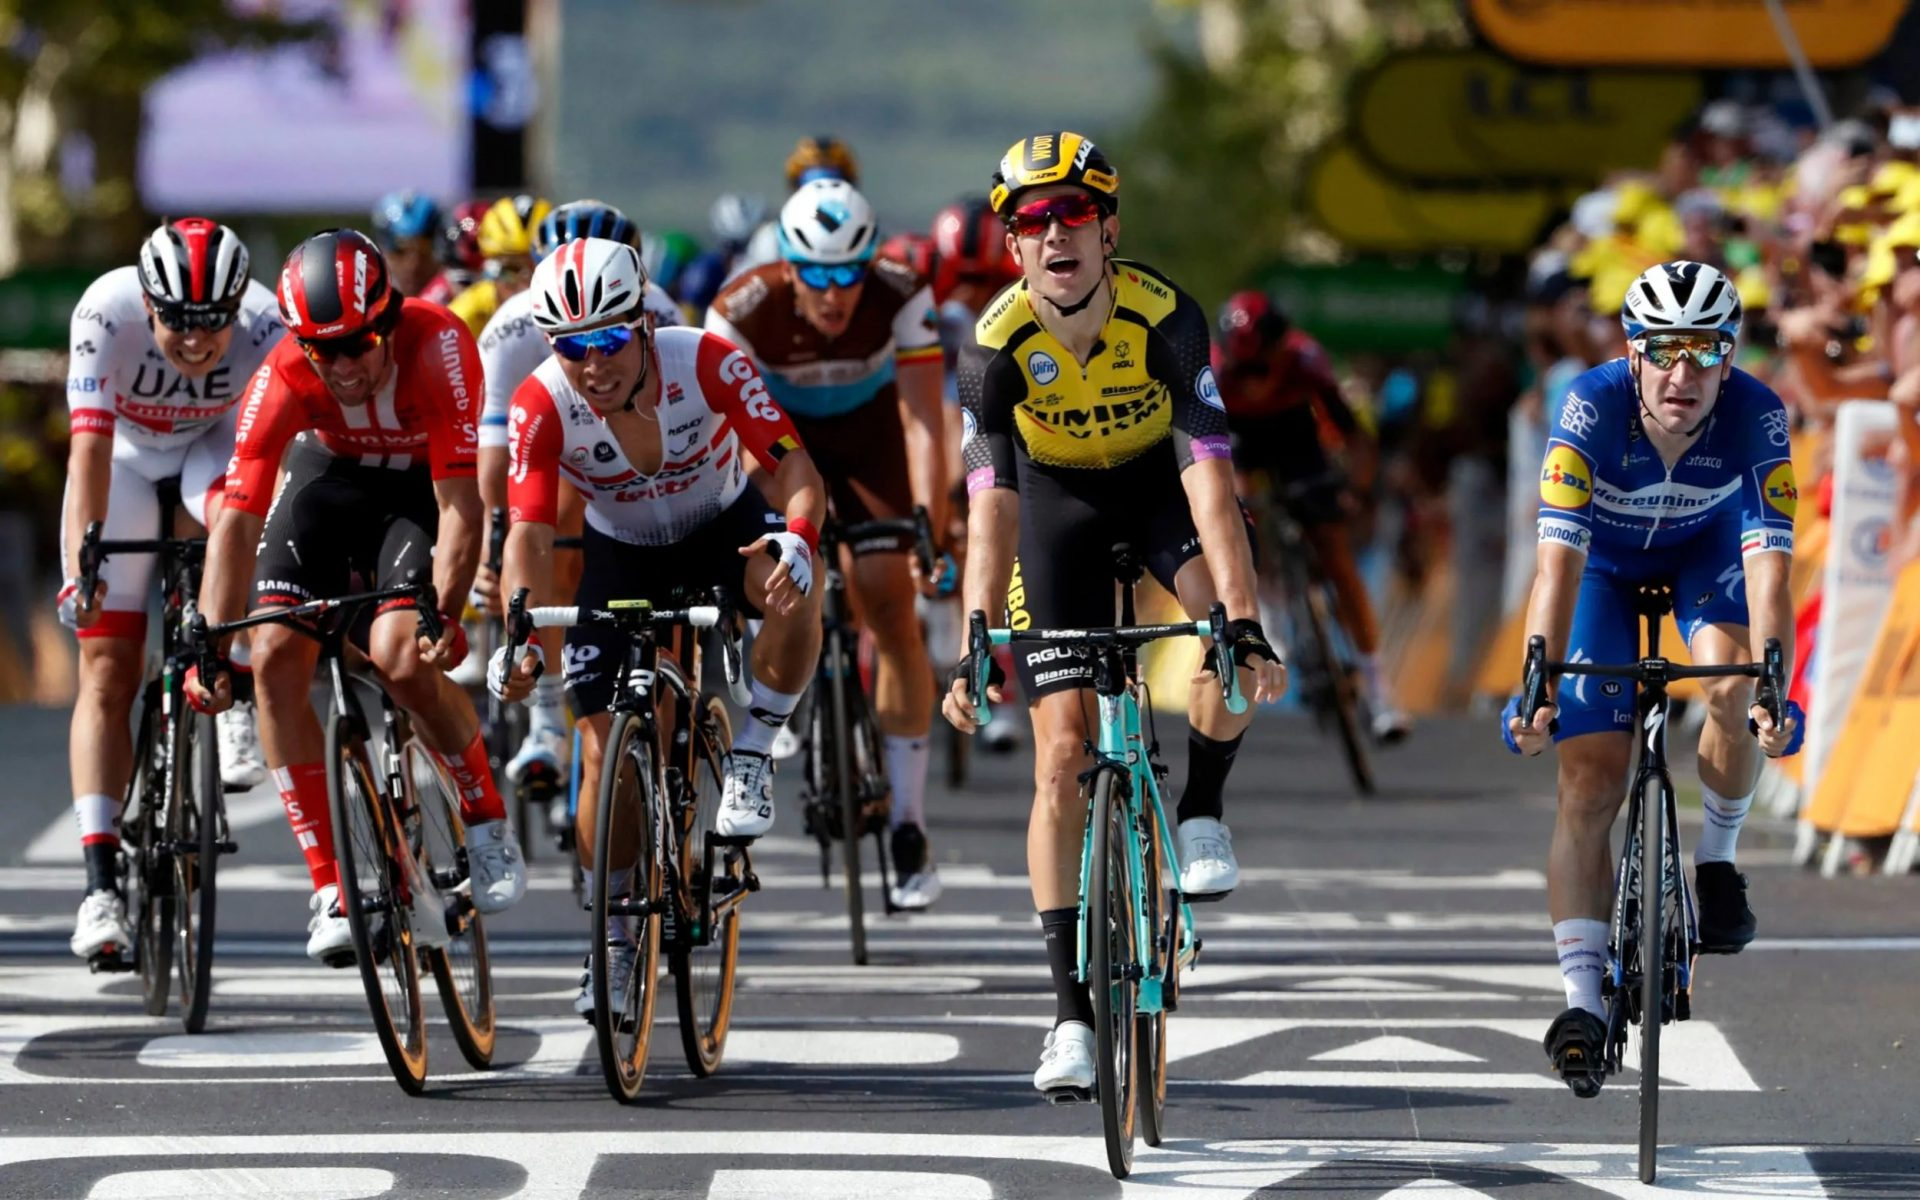 Van Aert Wins 2019 Tour de France Stage 10 and Some Big GC Contenders Lose Time 6